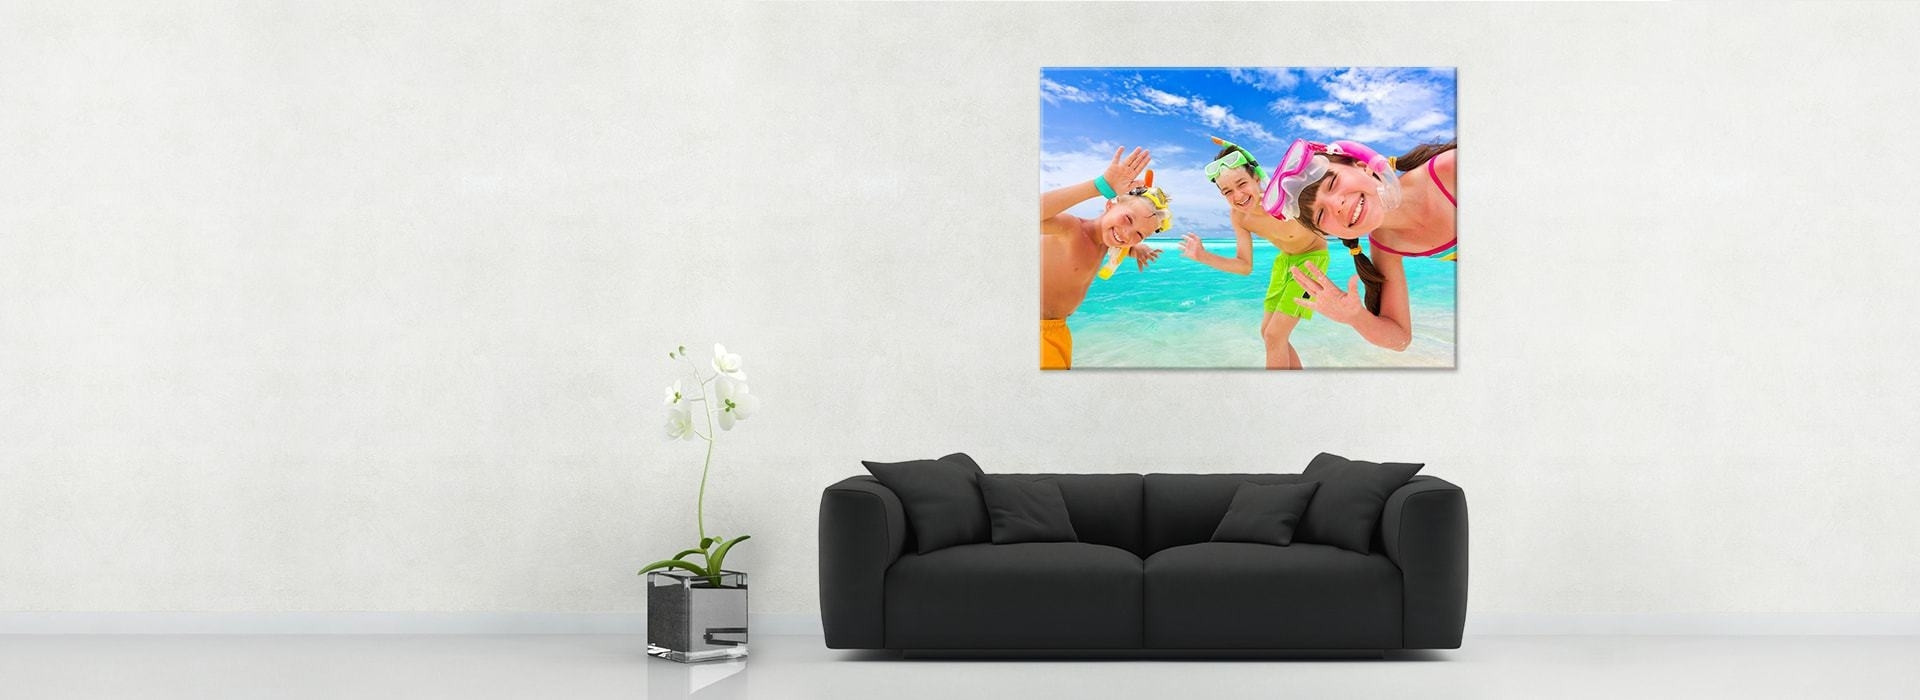 Canvas Prints | Save On Canvas Photo Prints | Canvas Factory Within Recent Geelong Canvas Wall Art (View 10 of 15)